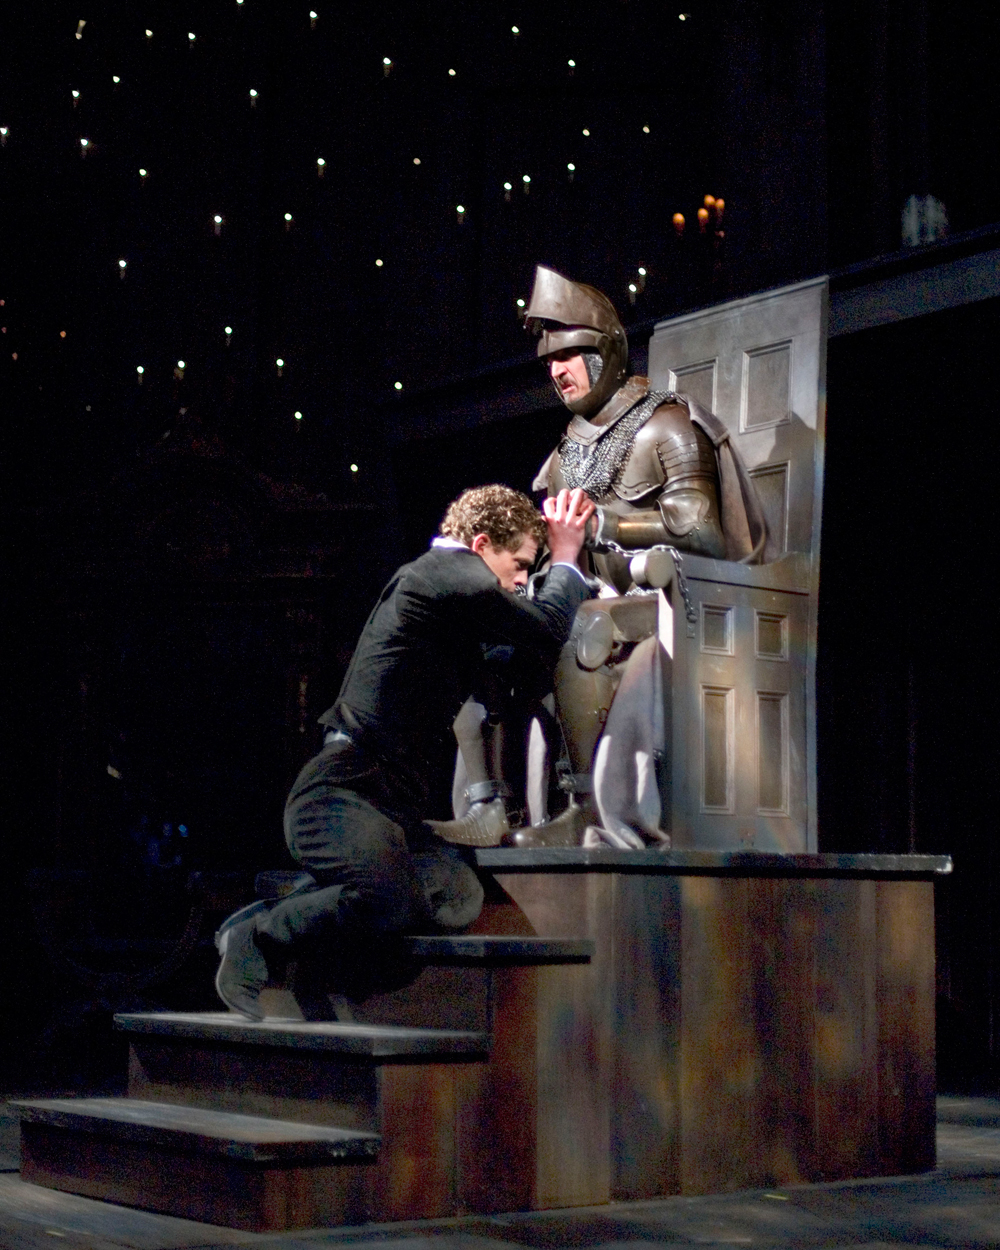 Lucas Hall and Bruce Turk in The Old Globe's 2007 production of Hamlet, directed by Darko Tresnjak. Photo by Craig Schwartz.